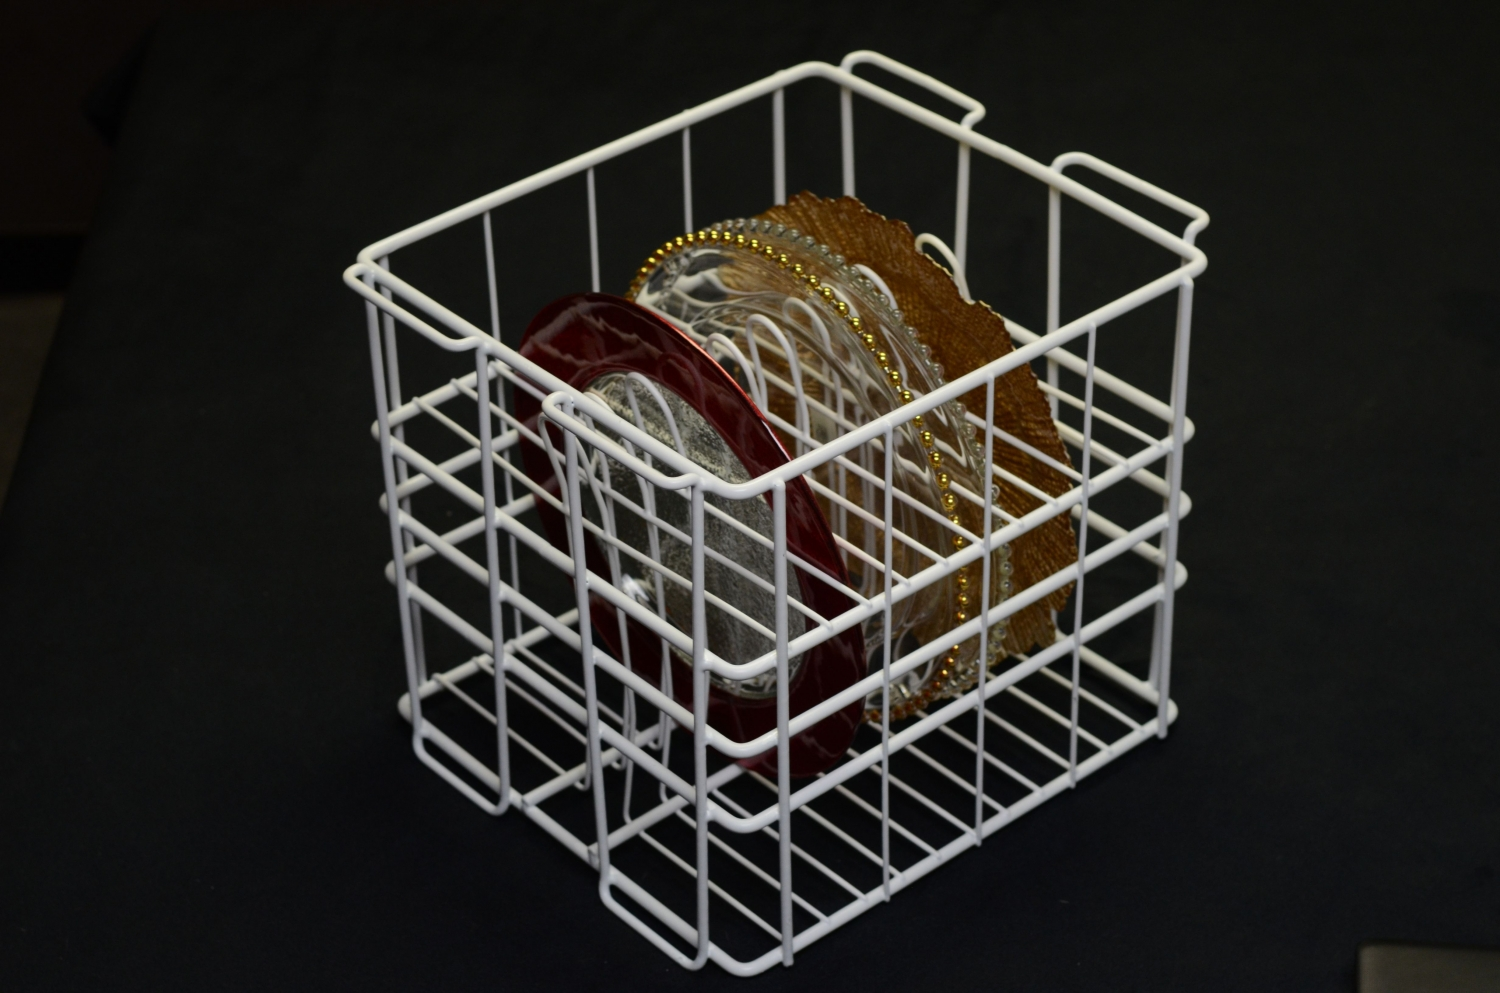 10 Strawberry Street GPLTR12 12 Compartment Rack for Glass Charger Plates - 4 pcs